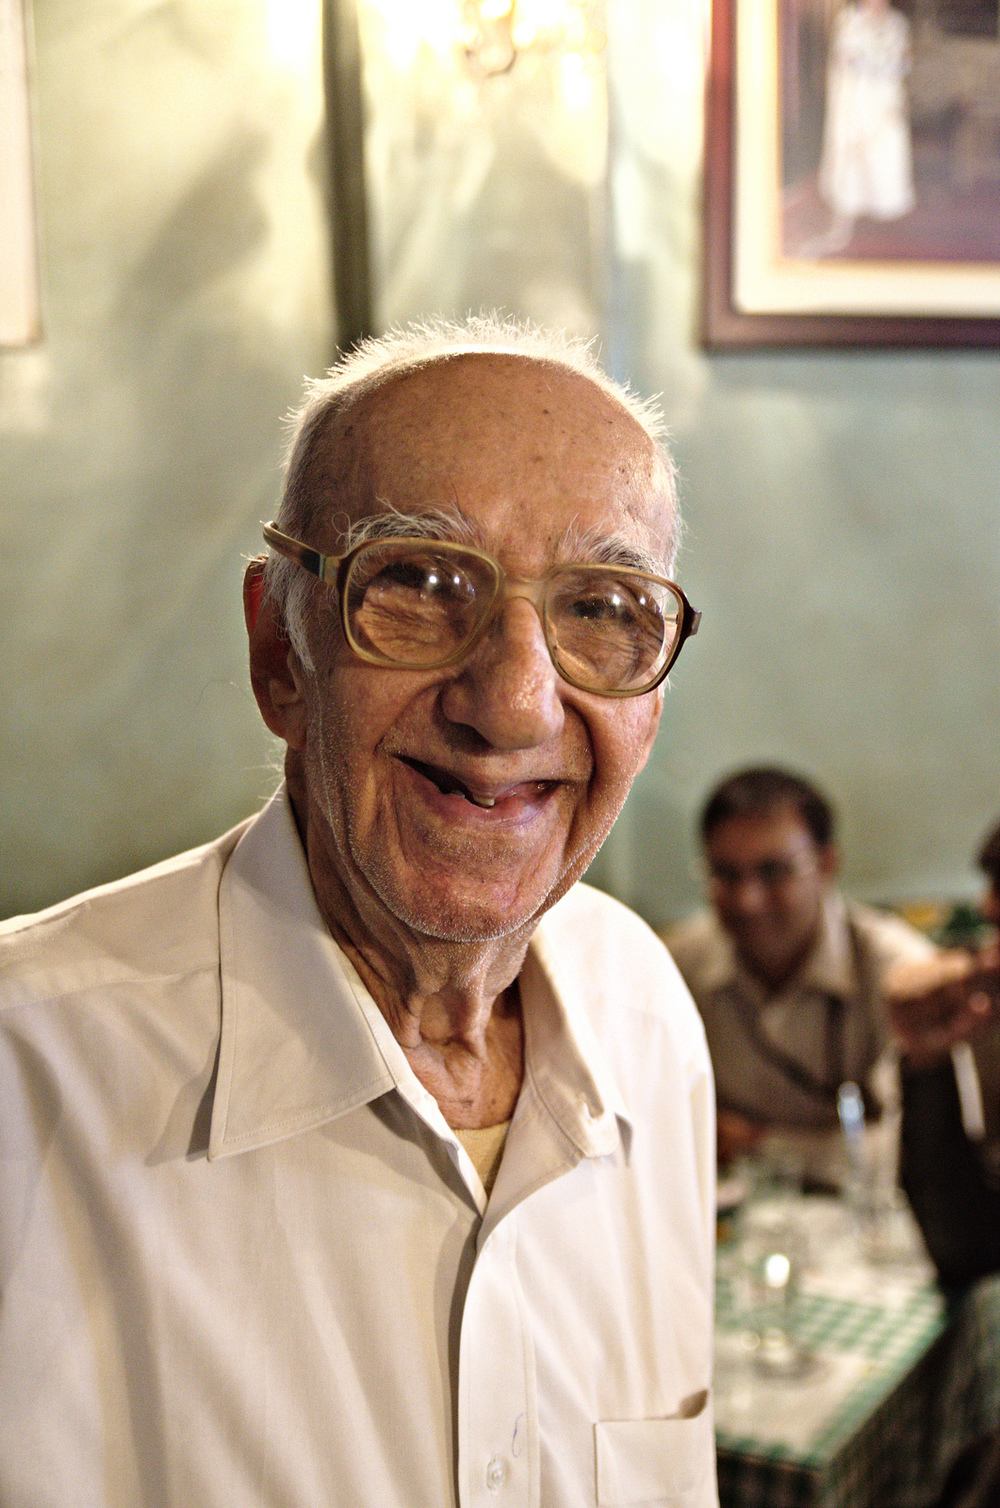 Boman Kohinoor, Owner of the Brittania restaurant in Mumbai, India